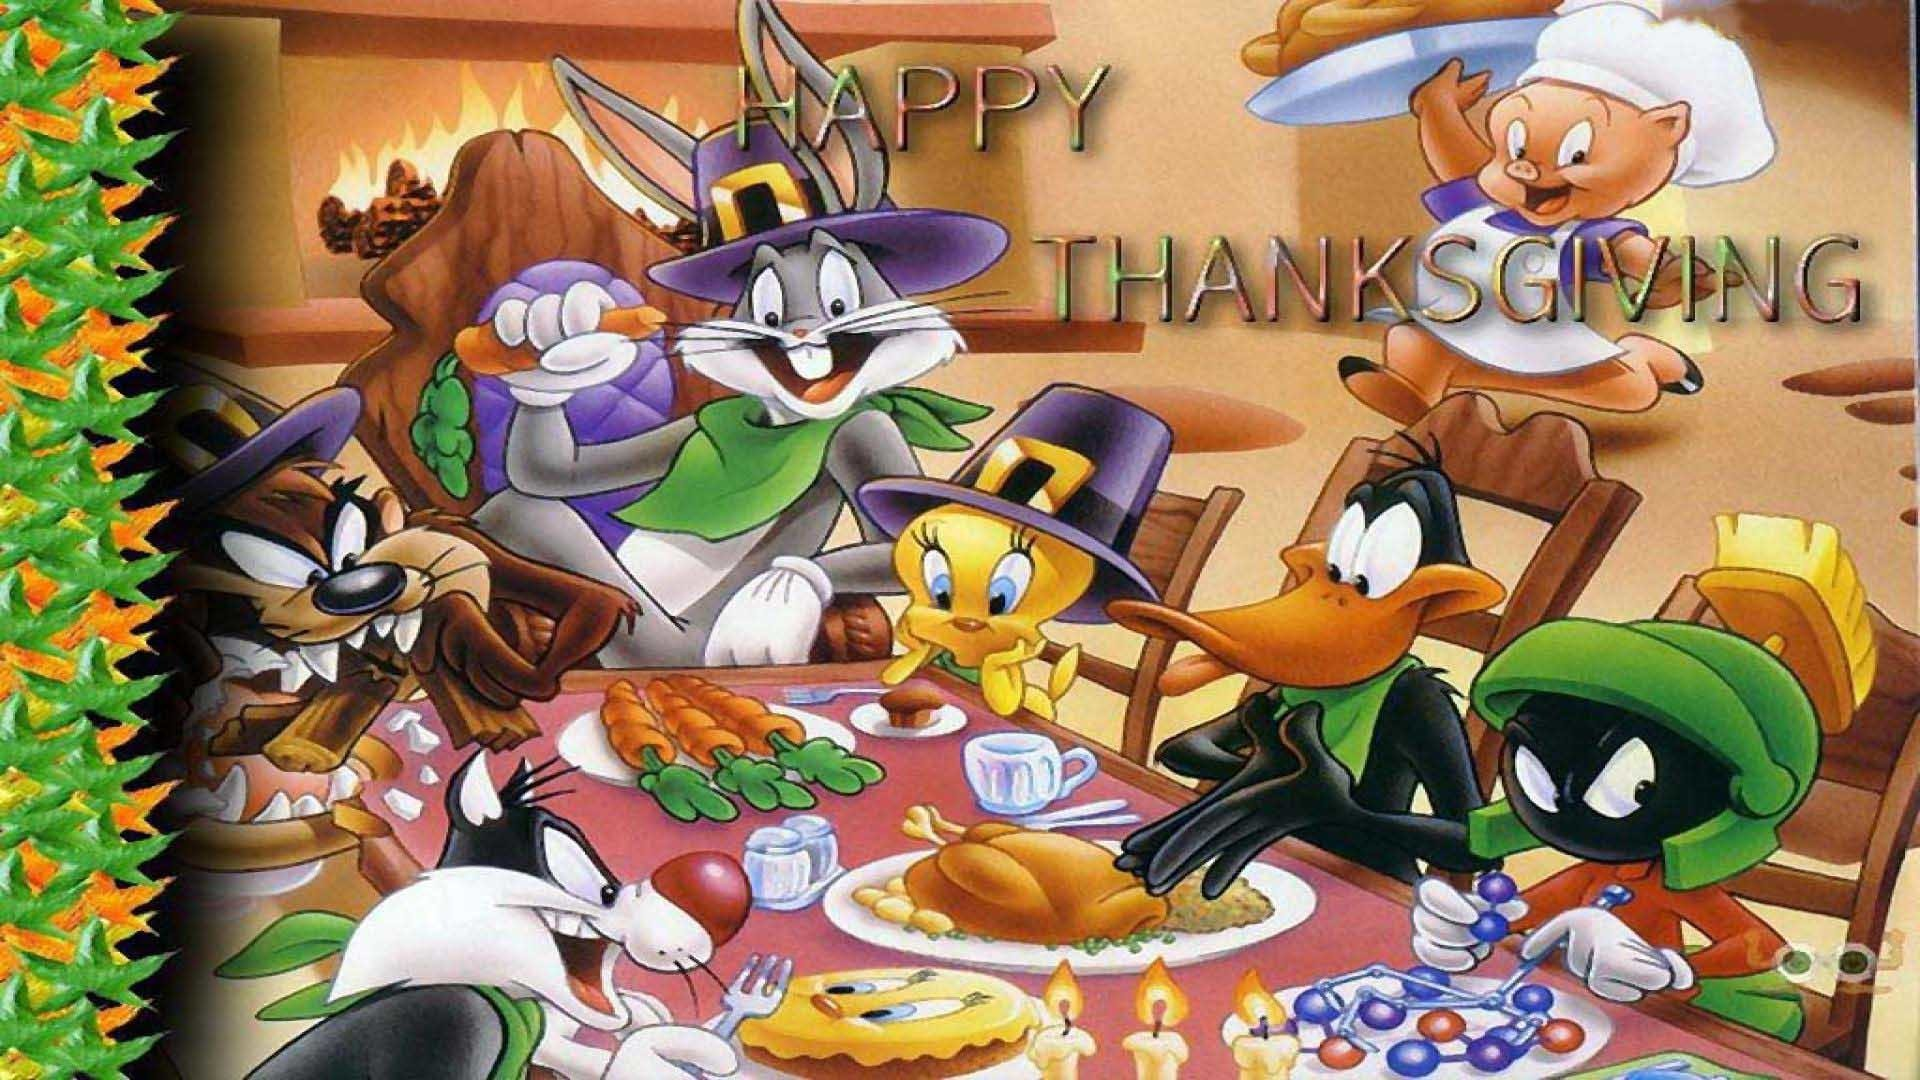 Photo Collection Snoopy Thanksgiving Wallpaper 1920 - Looney Tunes Thanksgiving - HD Wallpaper